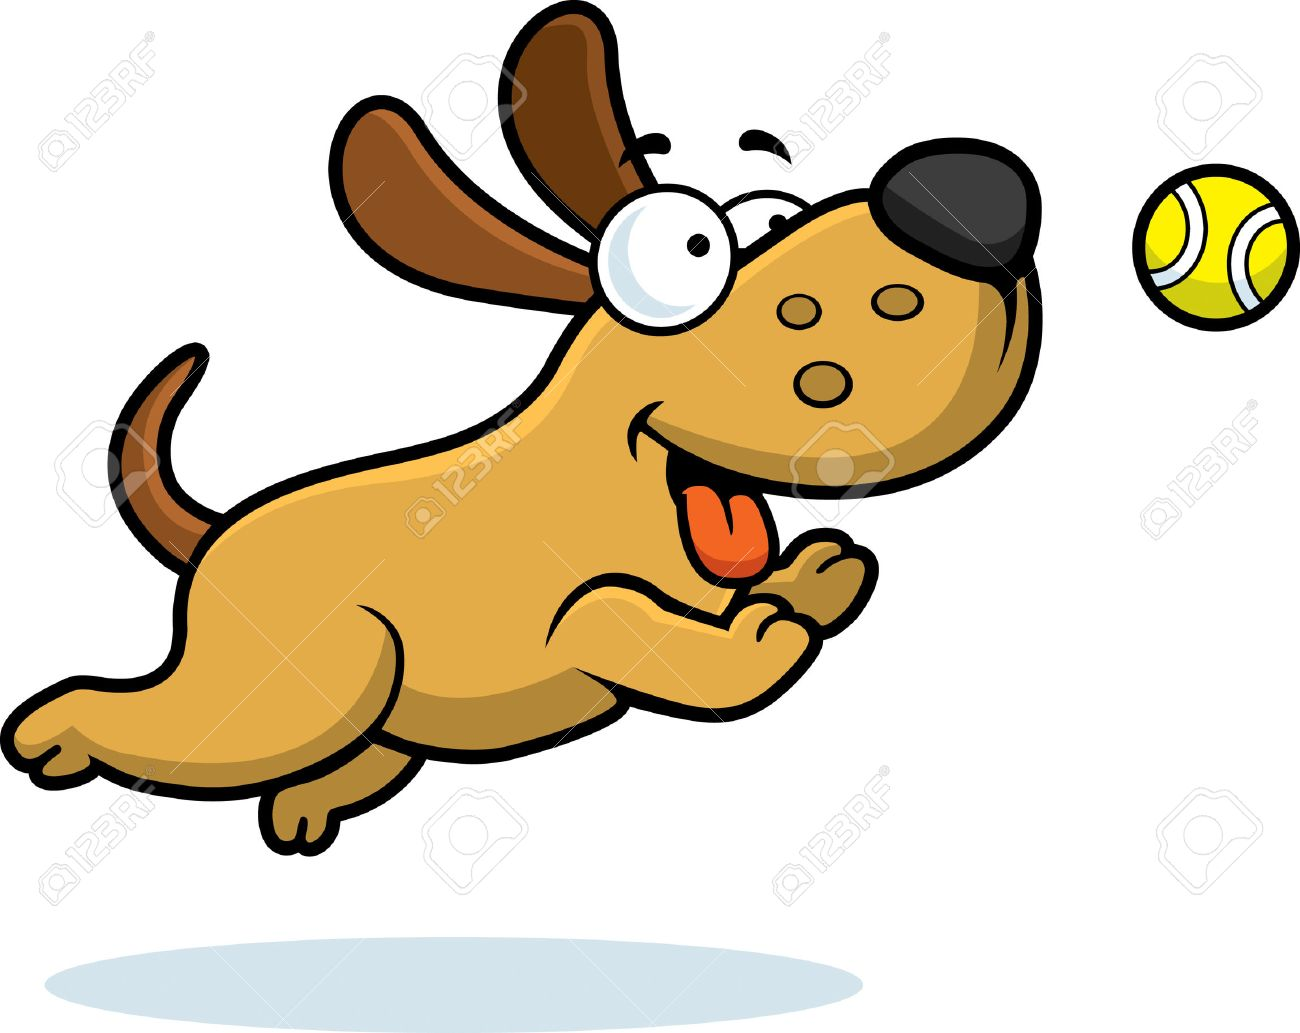 a cartoon illustration of a dog chasing a ball stock vector 42954912